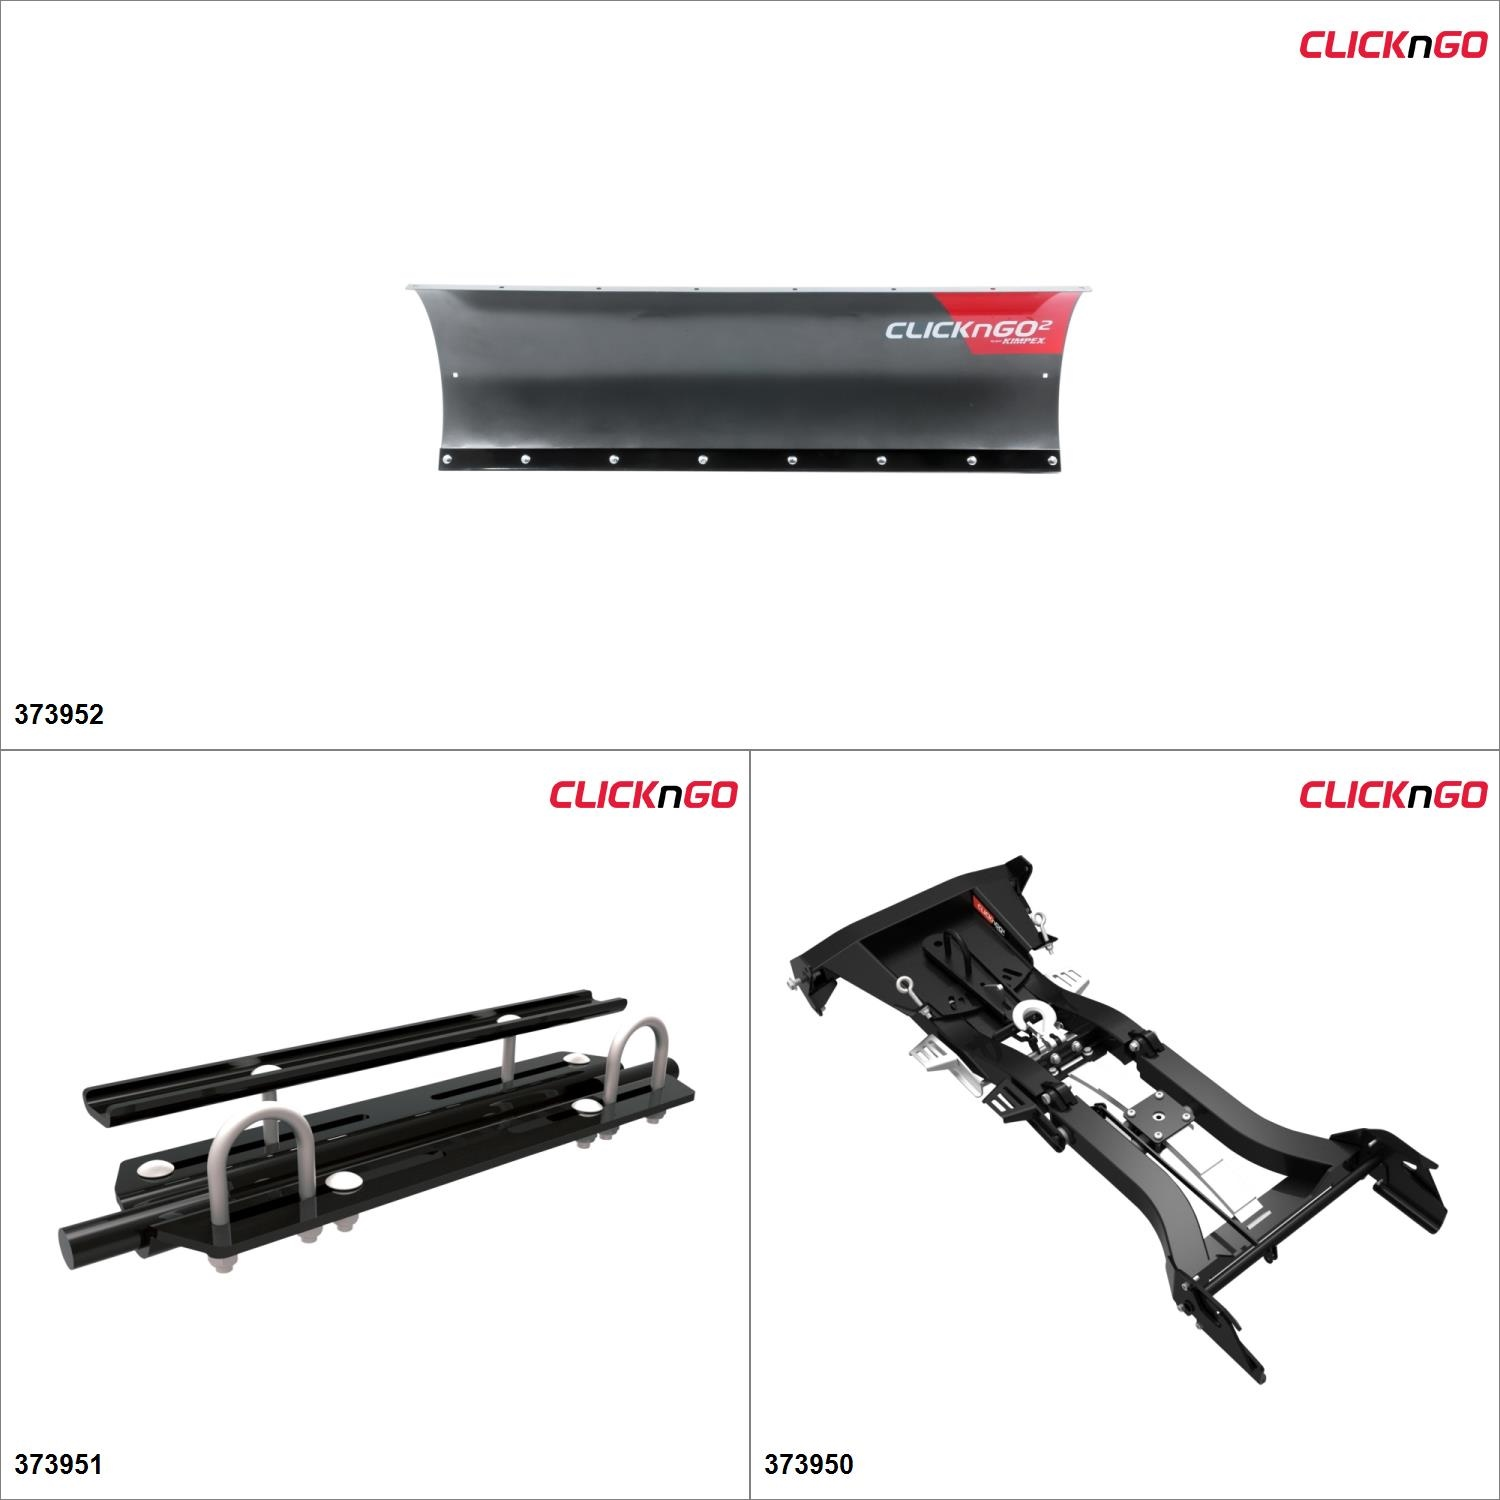 ClickNGo GEN 2 ATV Plow kit 54\ by CLICK N GO